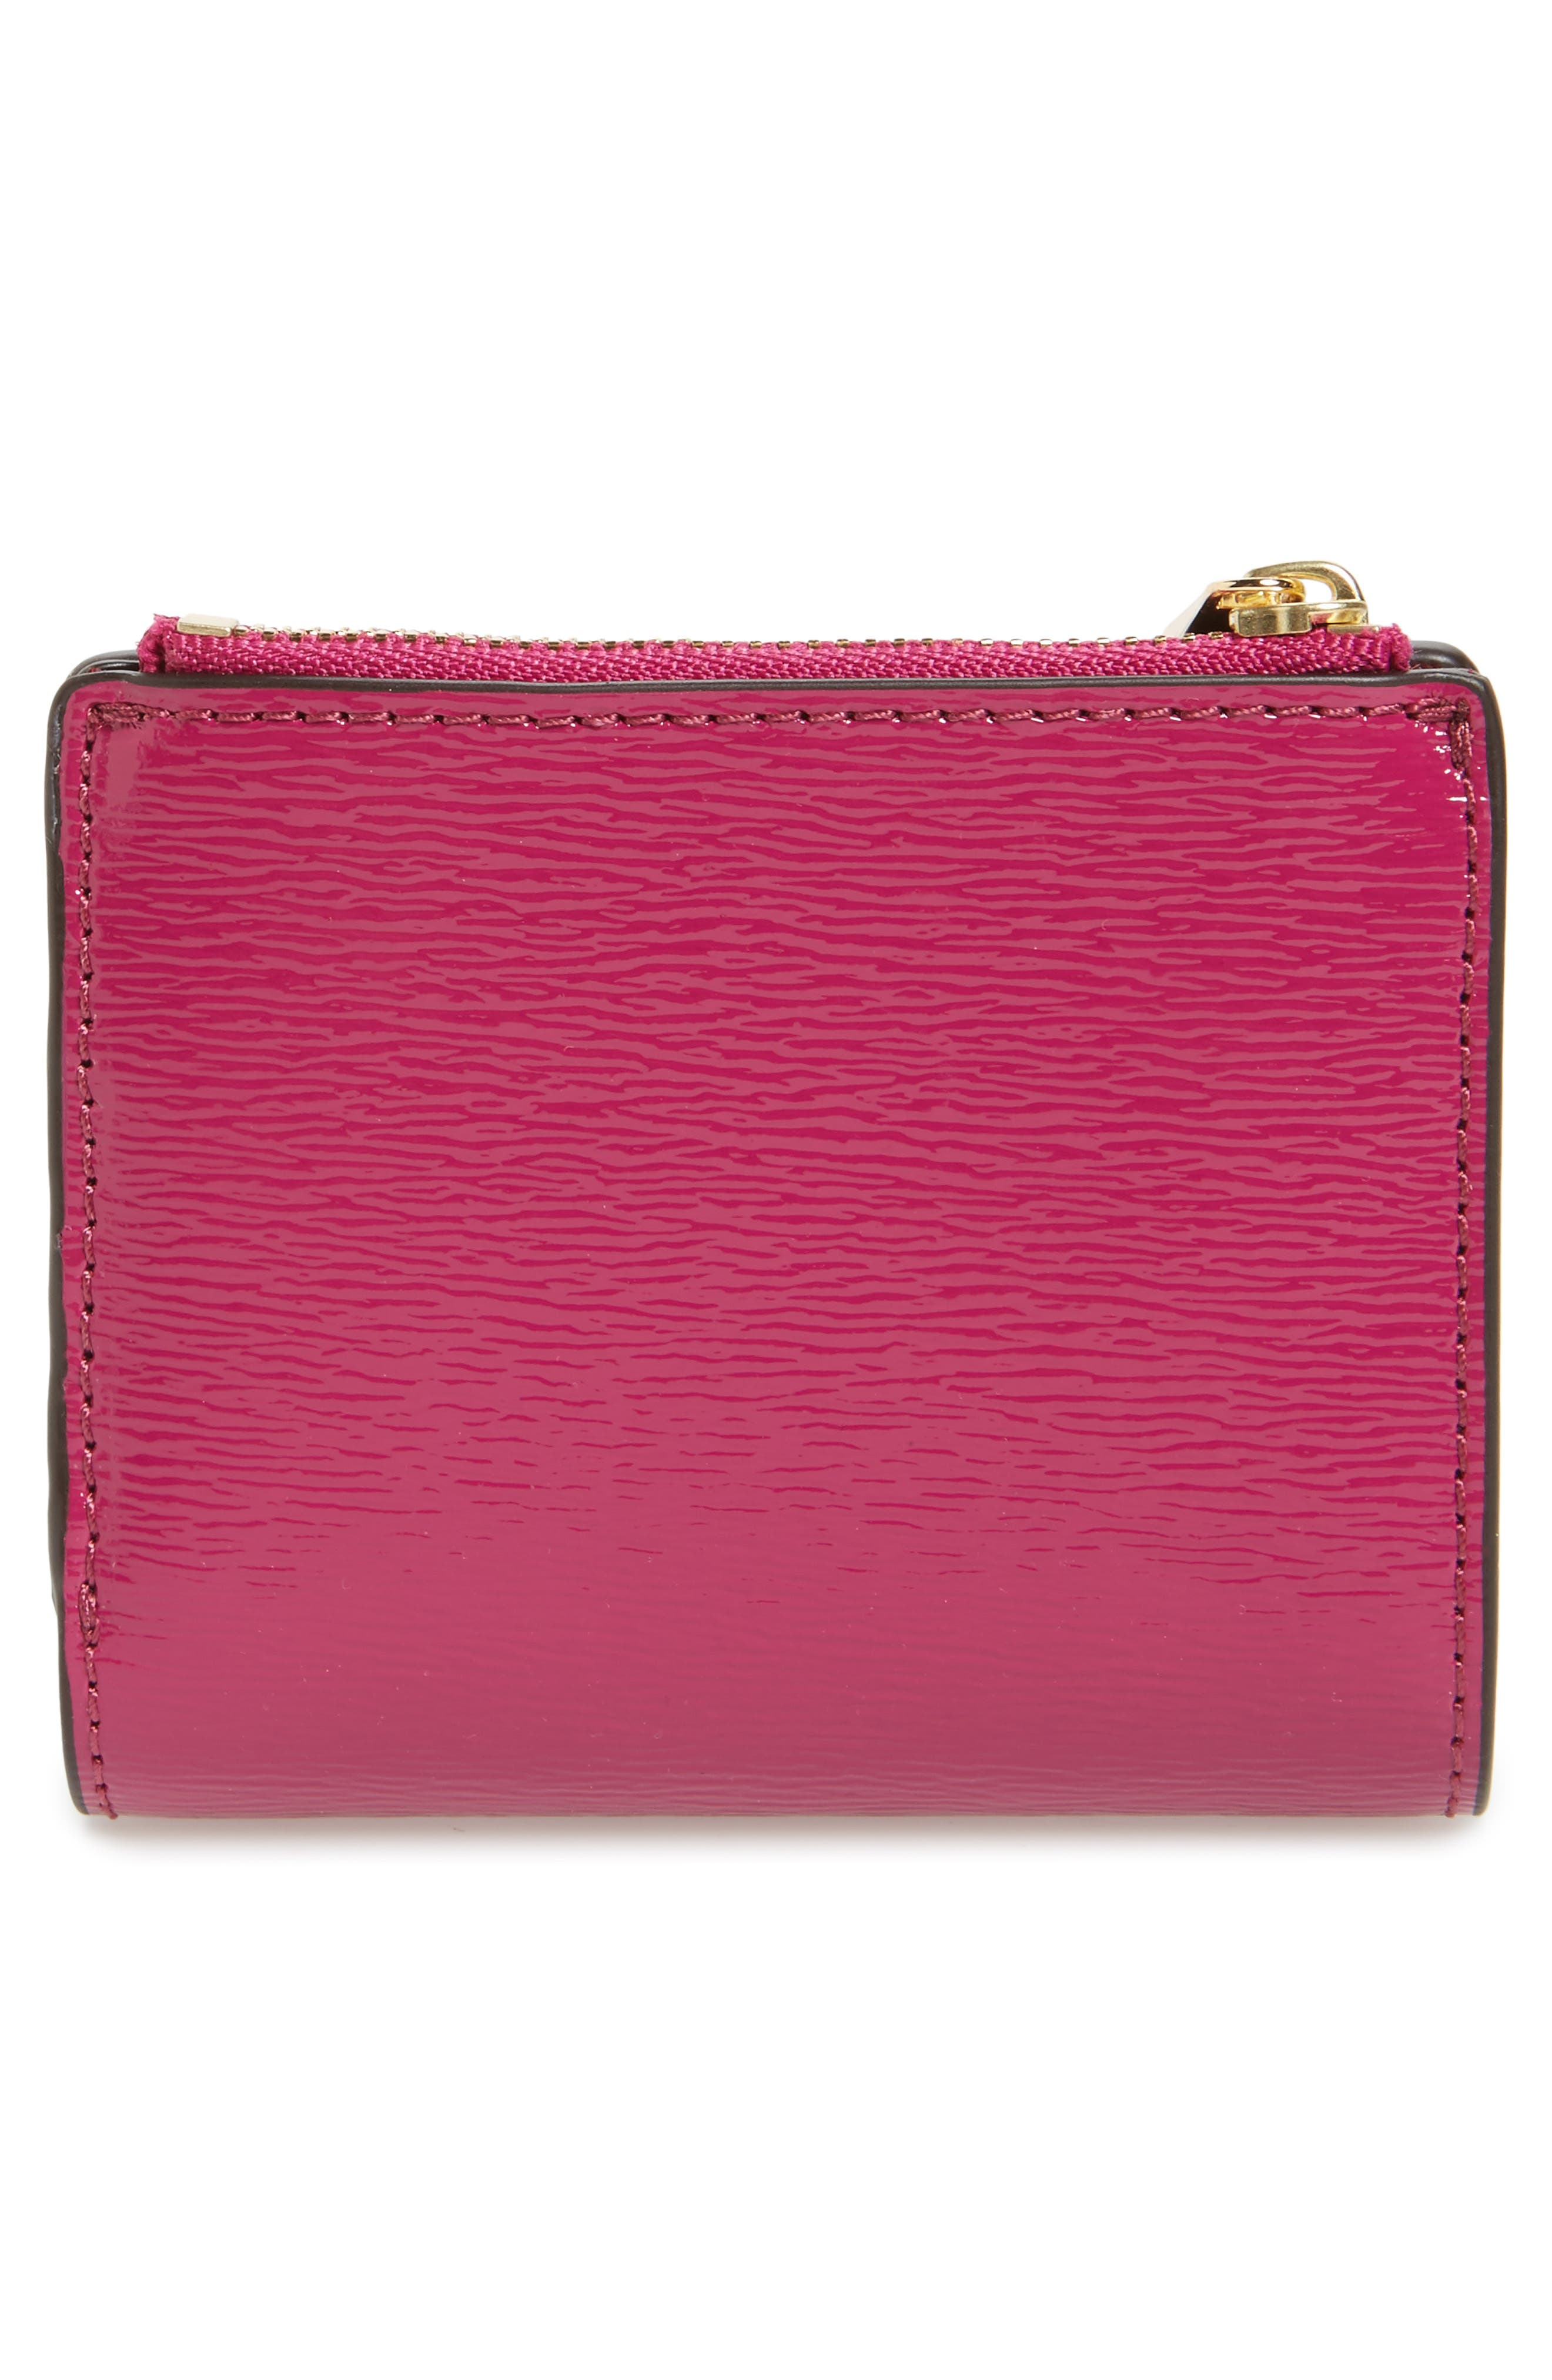 Mini Robinson Wallet Patent Leather Bifold Wallet,                             Alternate thumbnail 4, color,                             Party Fuchsia